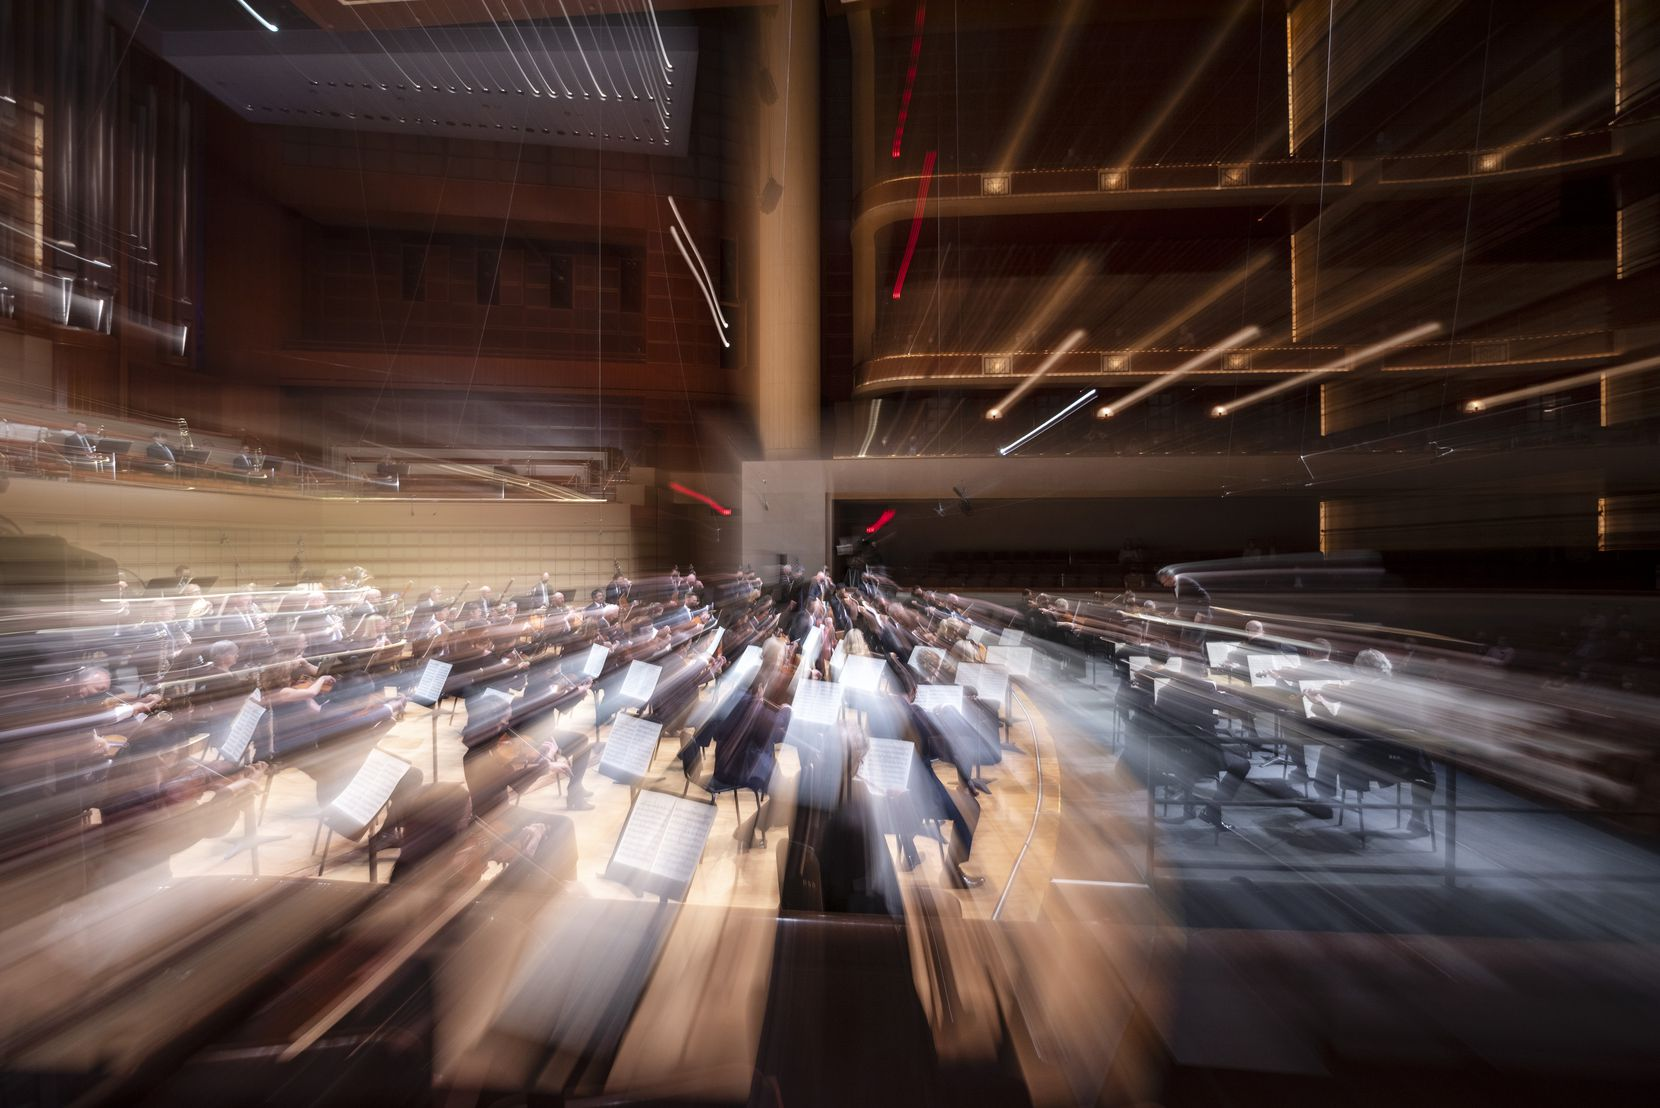 """A slow camera shutter shows musicians with the Dallas Symphony Orchestra and New York Metropolitan Opera Orchestra during a Friday night performance of Mahler Symphony No. 1 in D Major, """"Titan."""""""